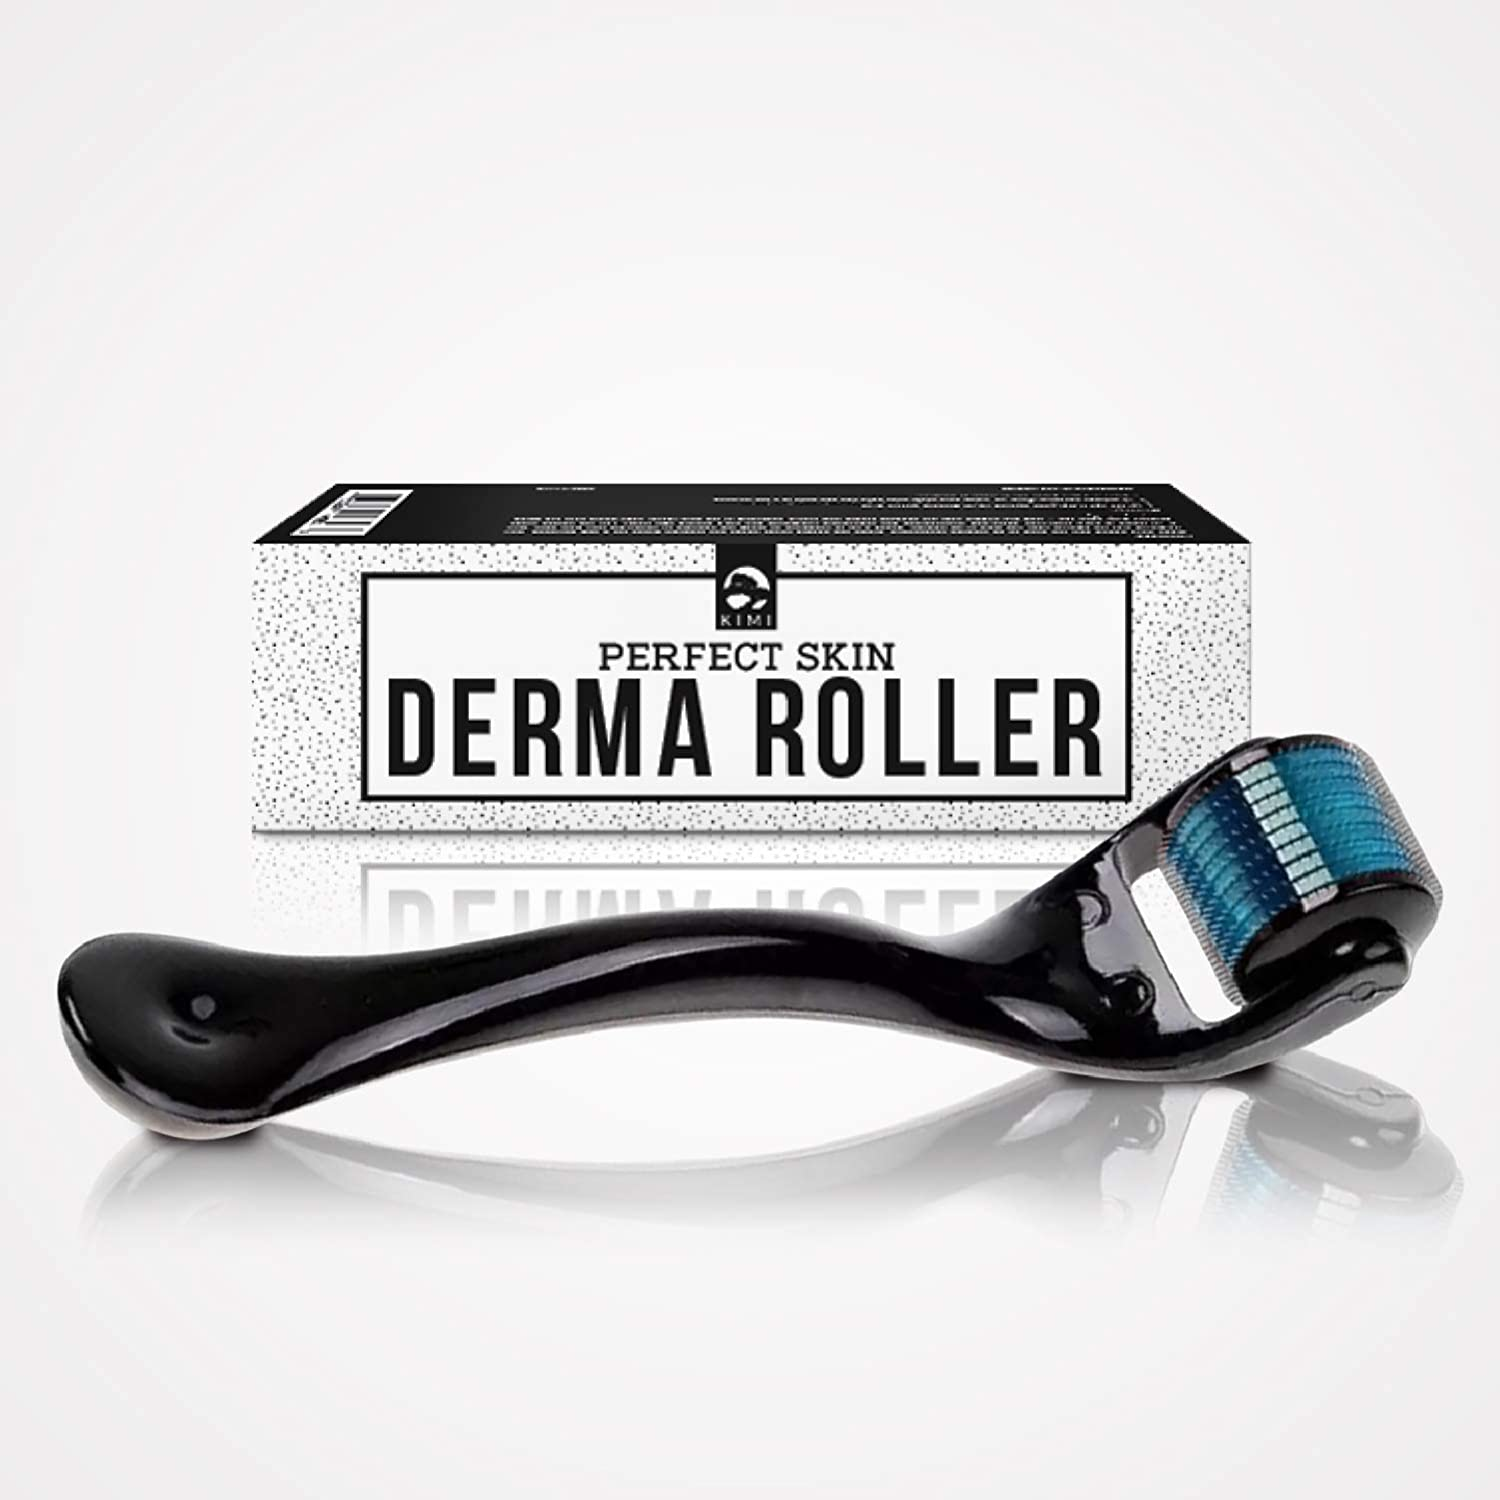 Micro Needles Derma Roller - 0.25 mm - 540 Microneedle Roller For Face And Skin by KIMI Wabi Sabi Innovations